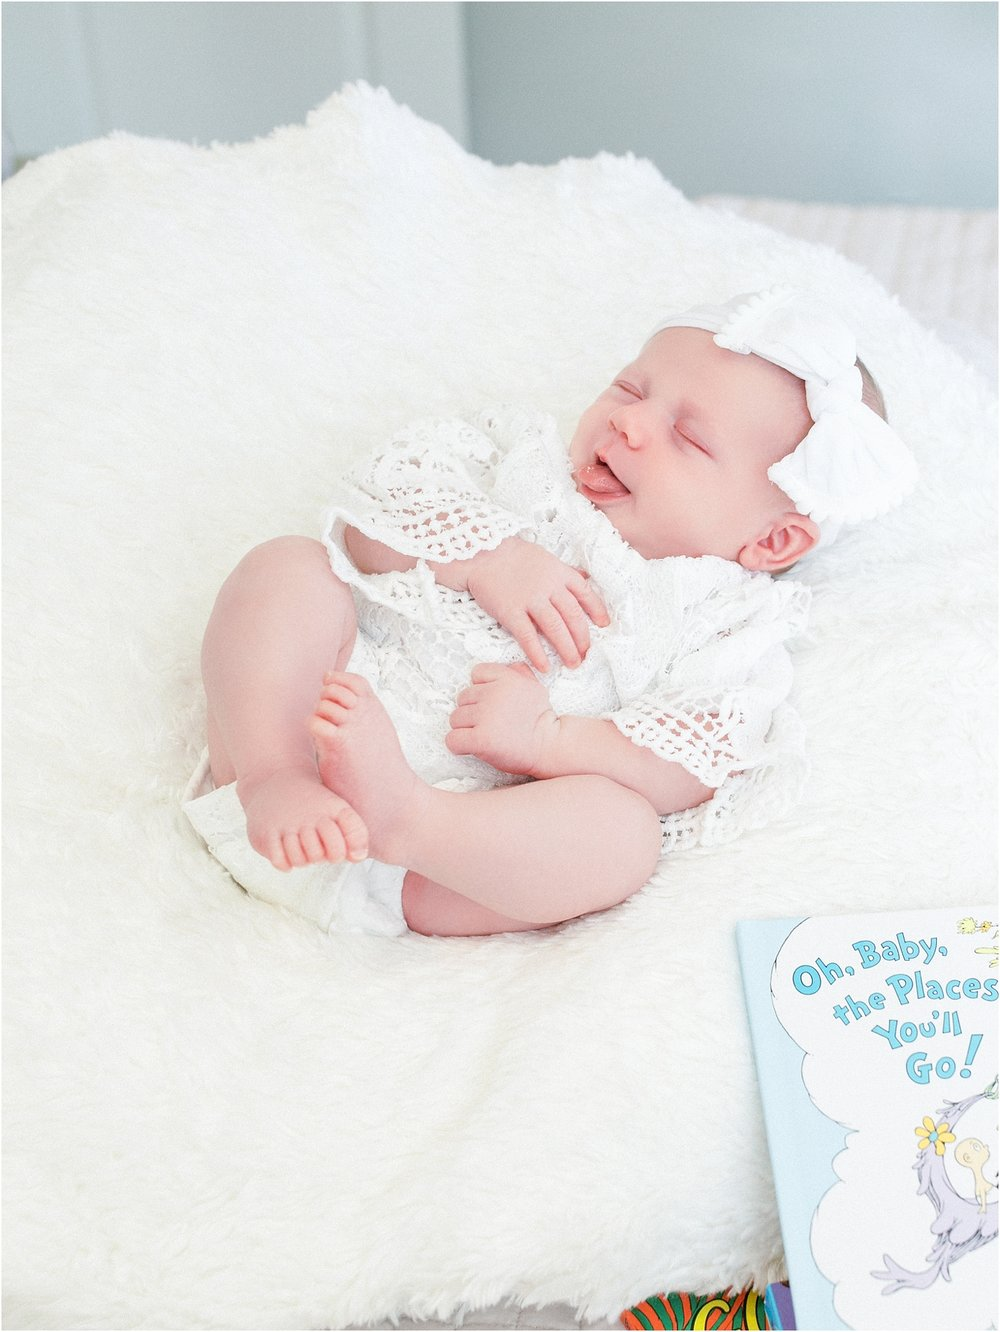 Lisa Silva Photography- Ponte Vedra Beach, St. Augustine and Jacksonville, Florida Fine Art Film Wedding and Boudoir Photography- Newborn Lifestyle Session at Home_0018a.jpg